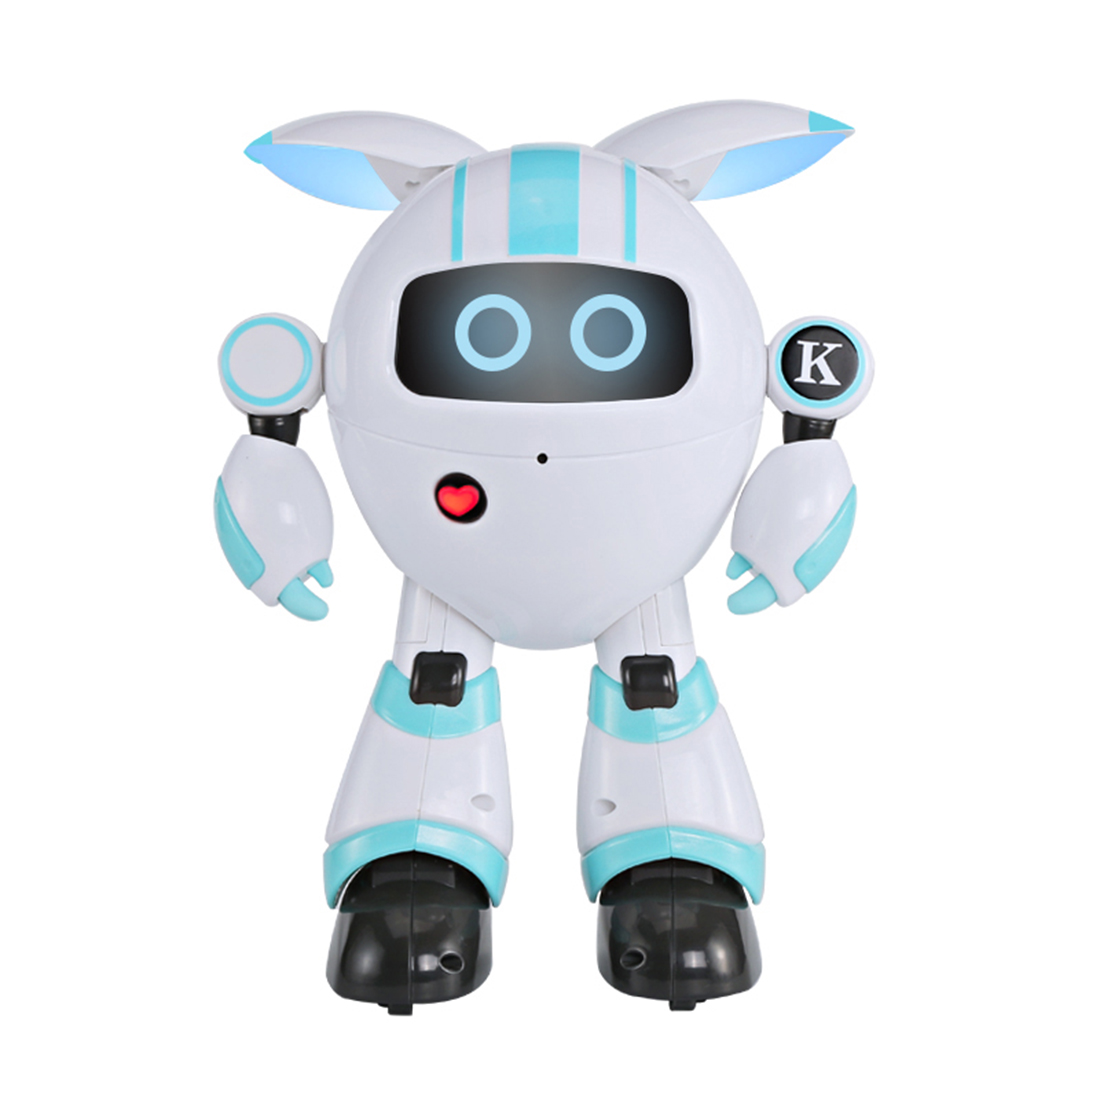 Modiker Smart Programmable Walking Robot RC Electronic Dancing Singing Story Telling Robot Toy For Children High Tech Toys- Blue